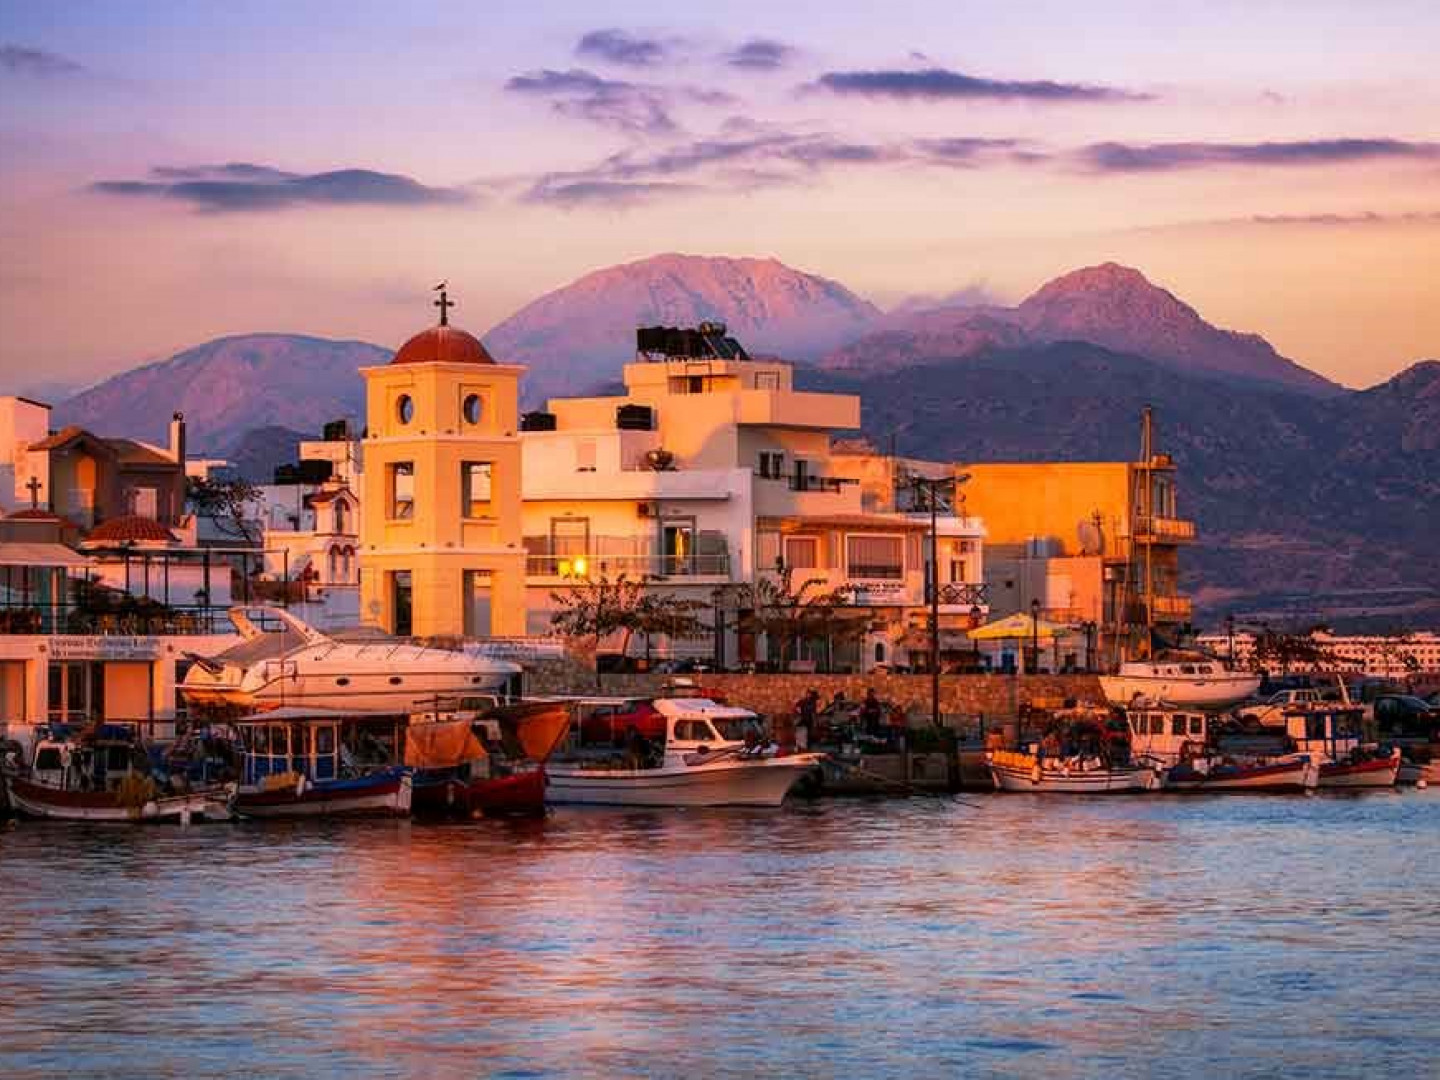 2. Crete is the largest of all the Greek islands.